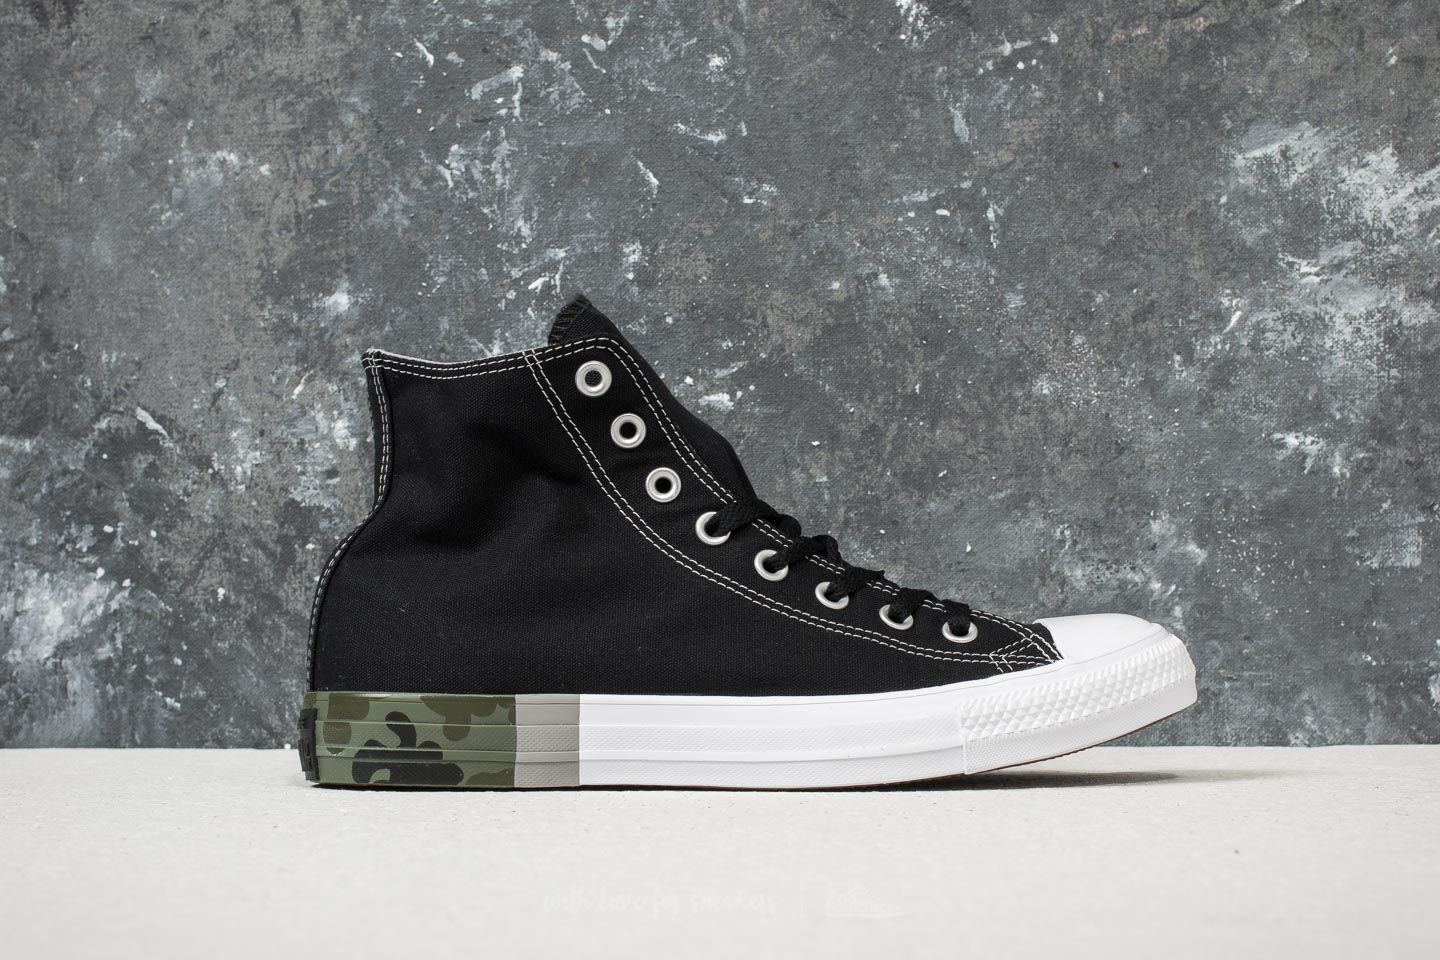 466f08469dc Converse Chuck Taylor All Star Hi Black  Dolphin  White at a great price  60